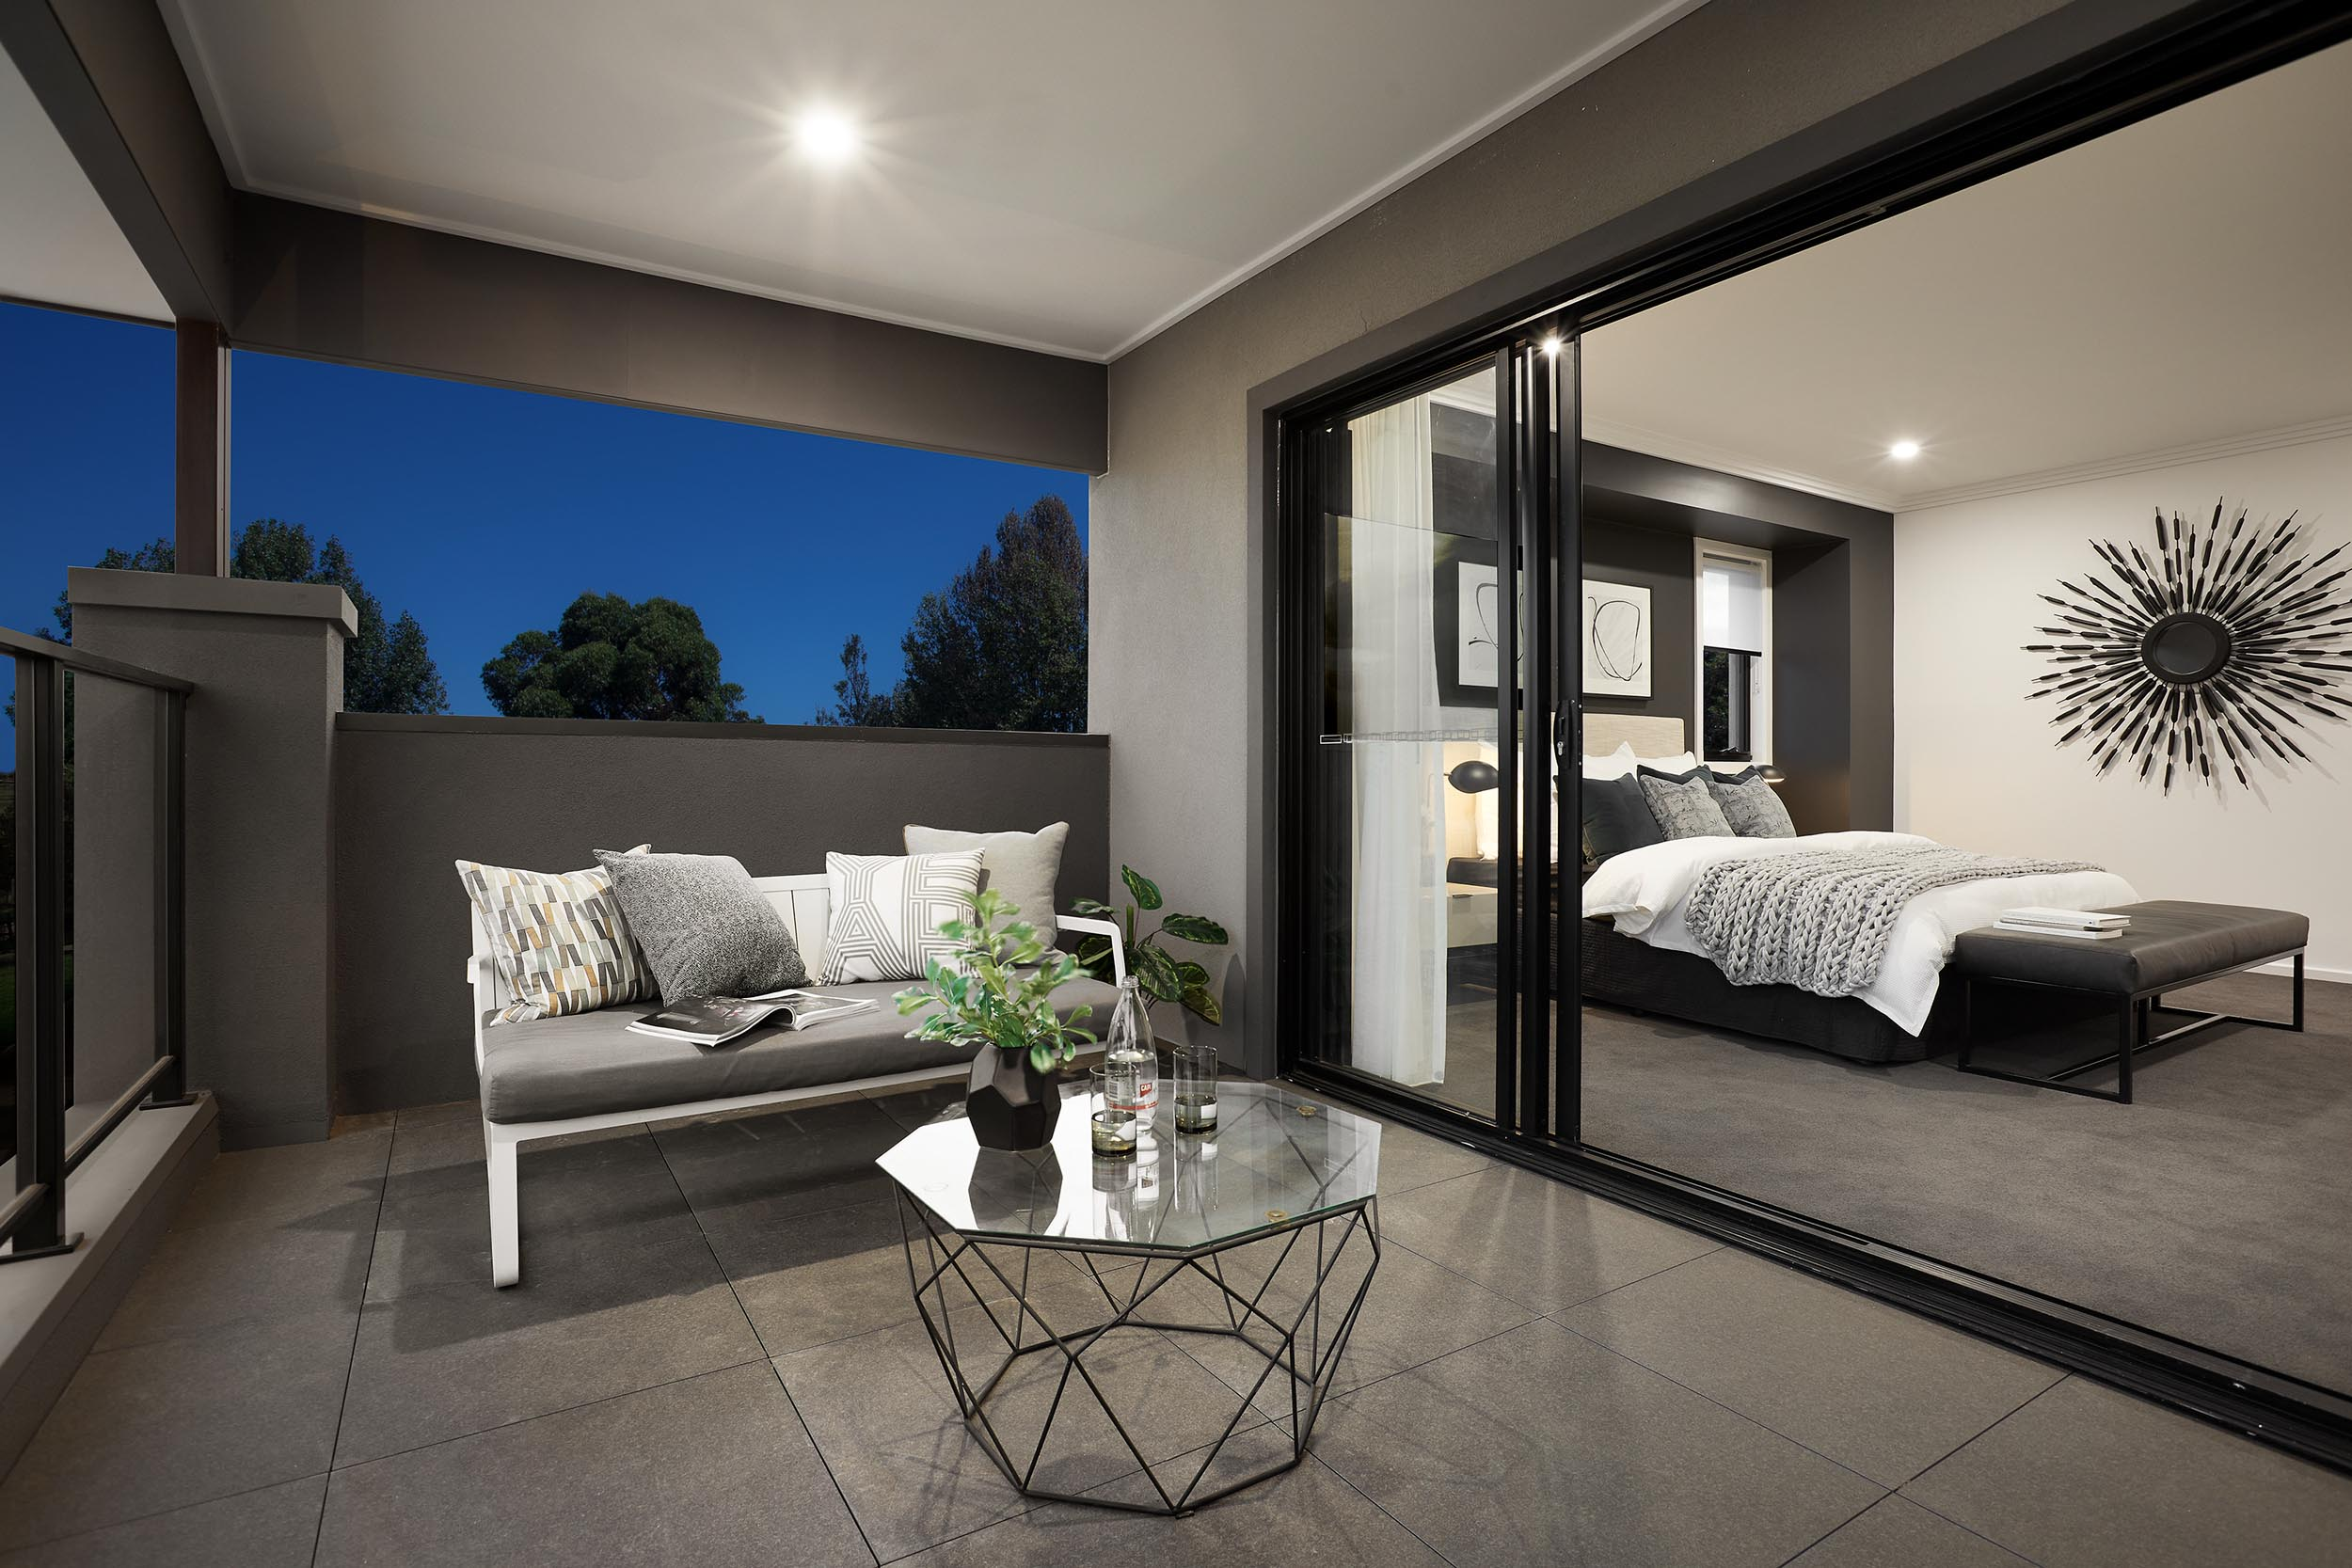 Savana 37 Home Design